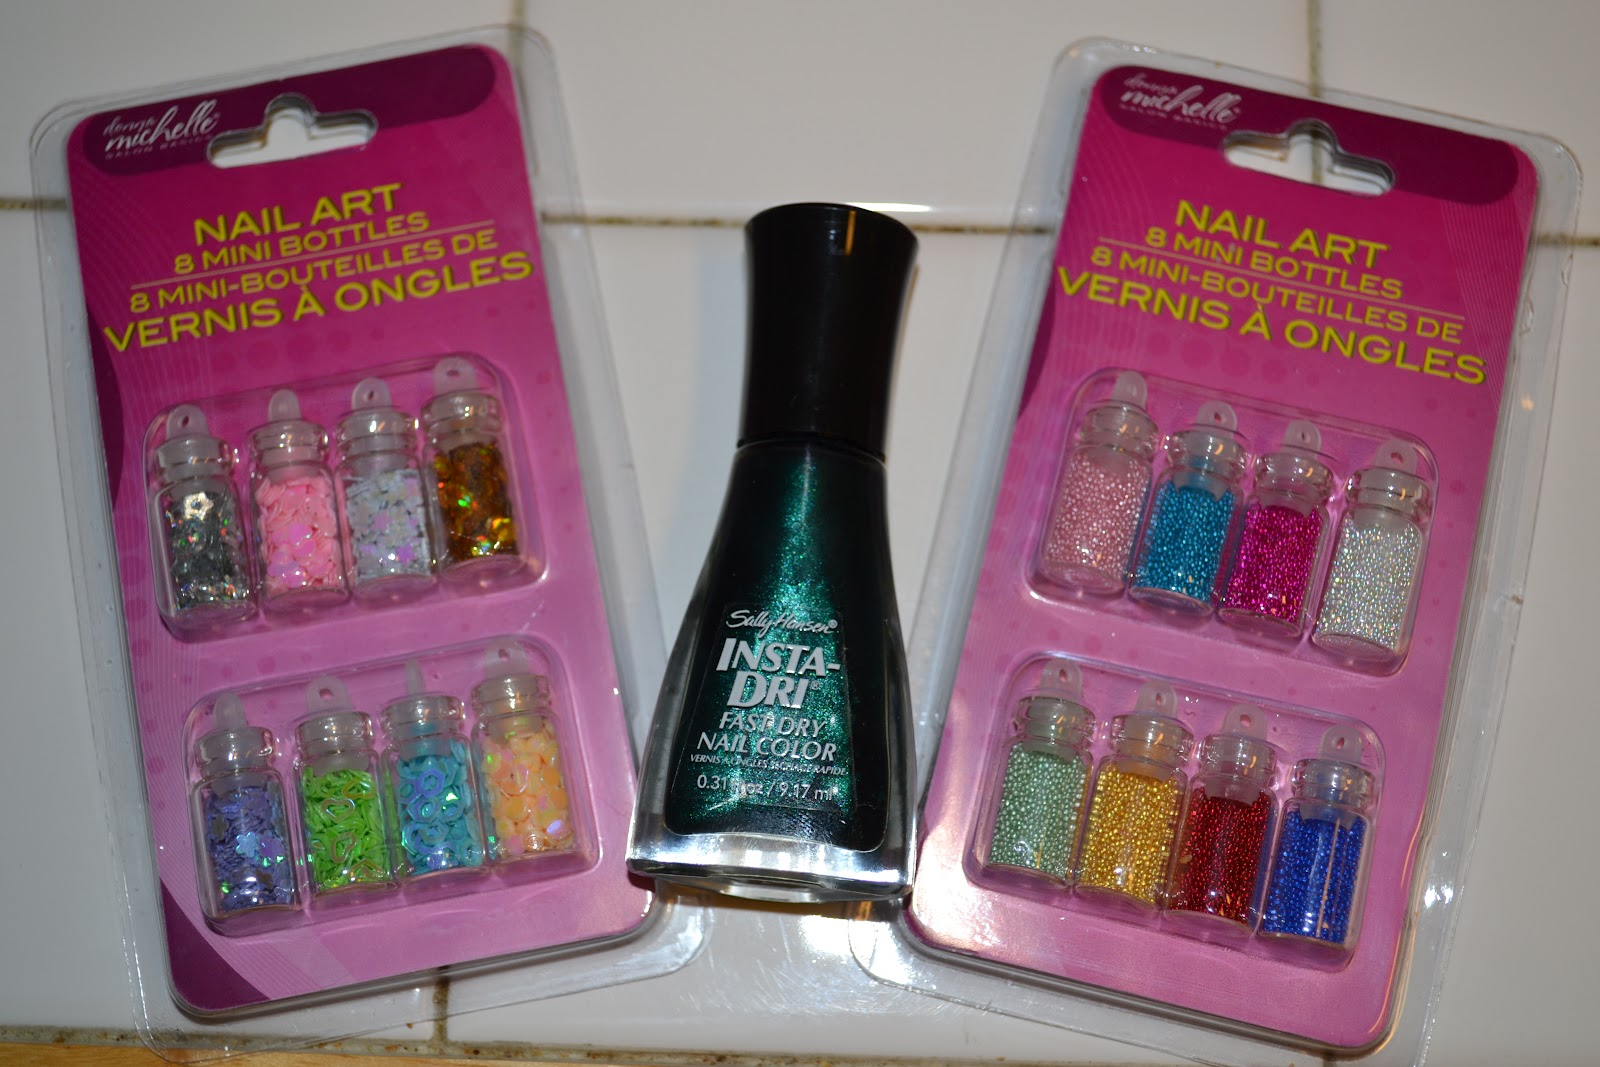 these sample sized bottles of nail art. Considering how much nail art ...